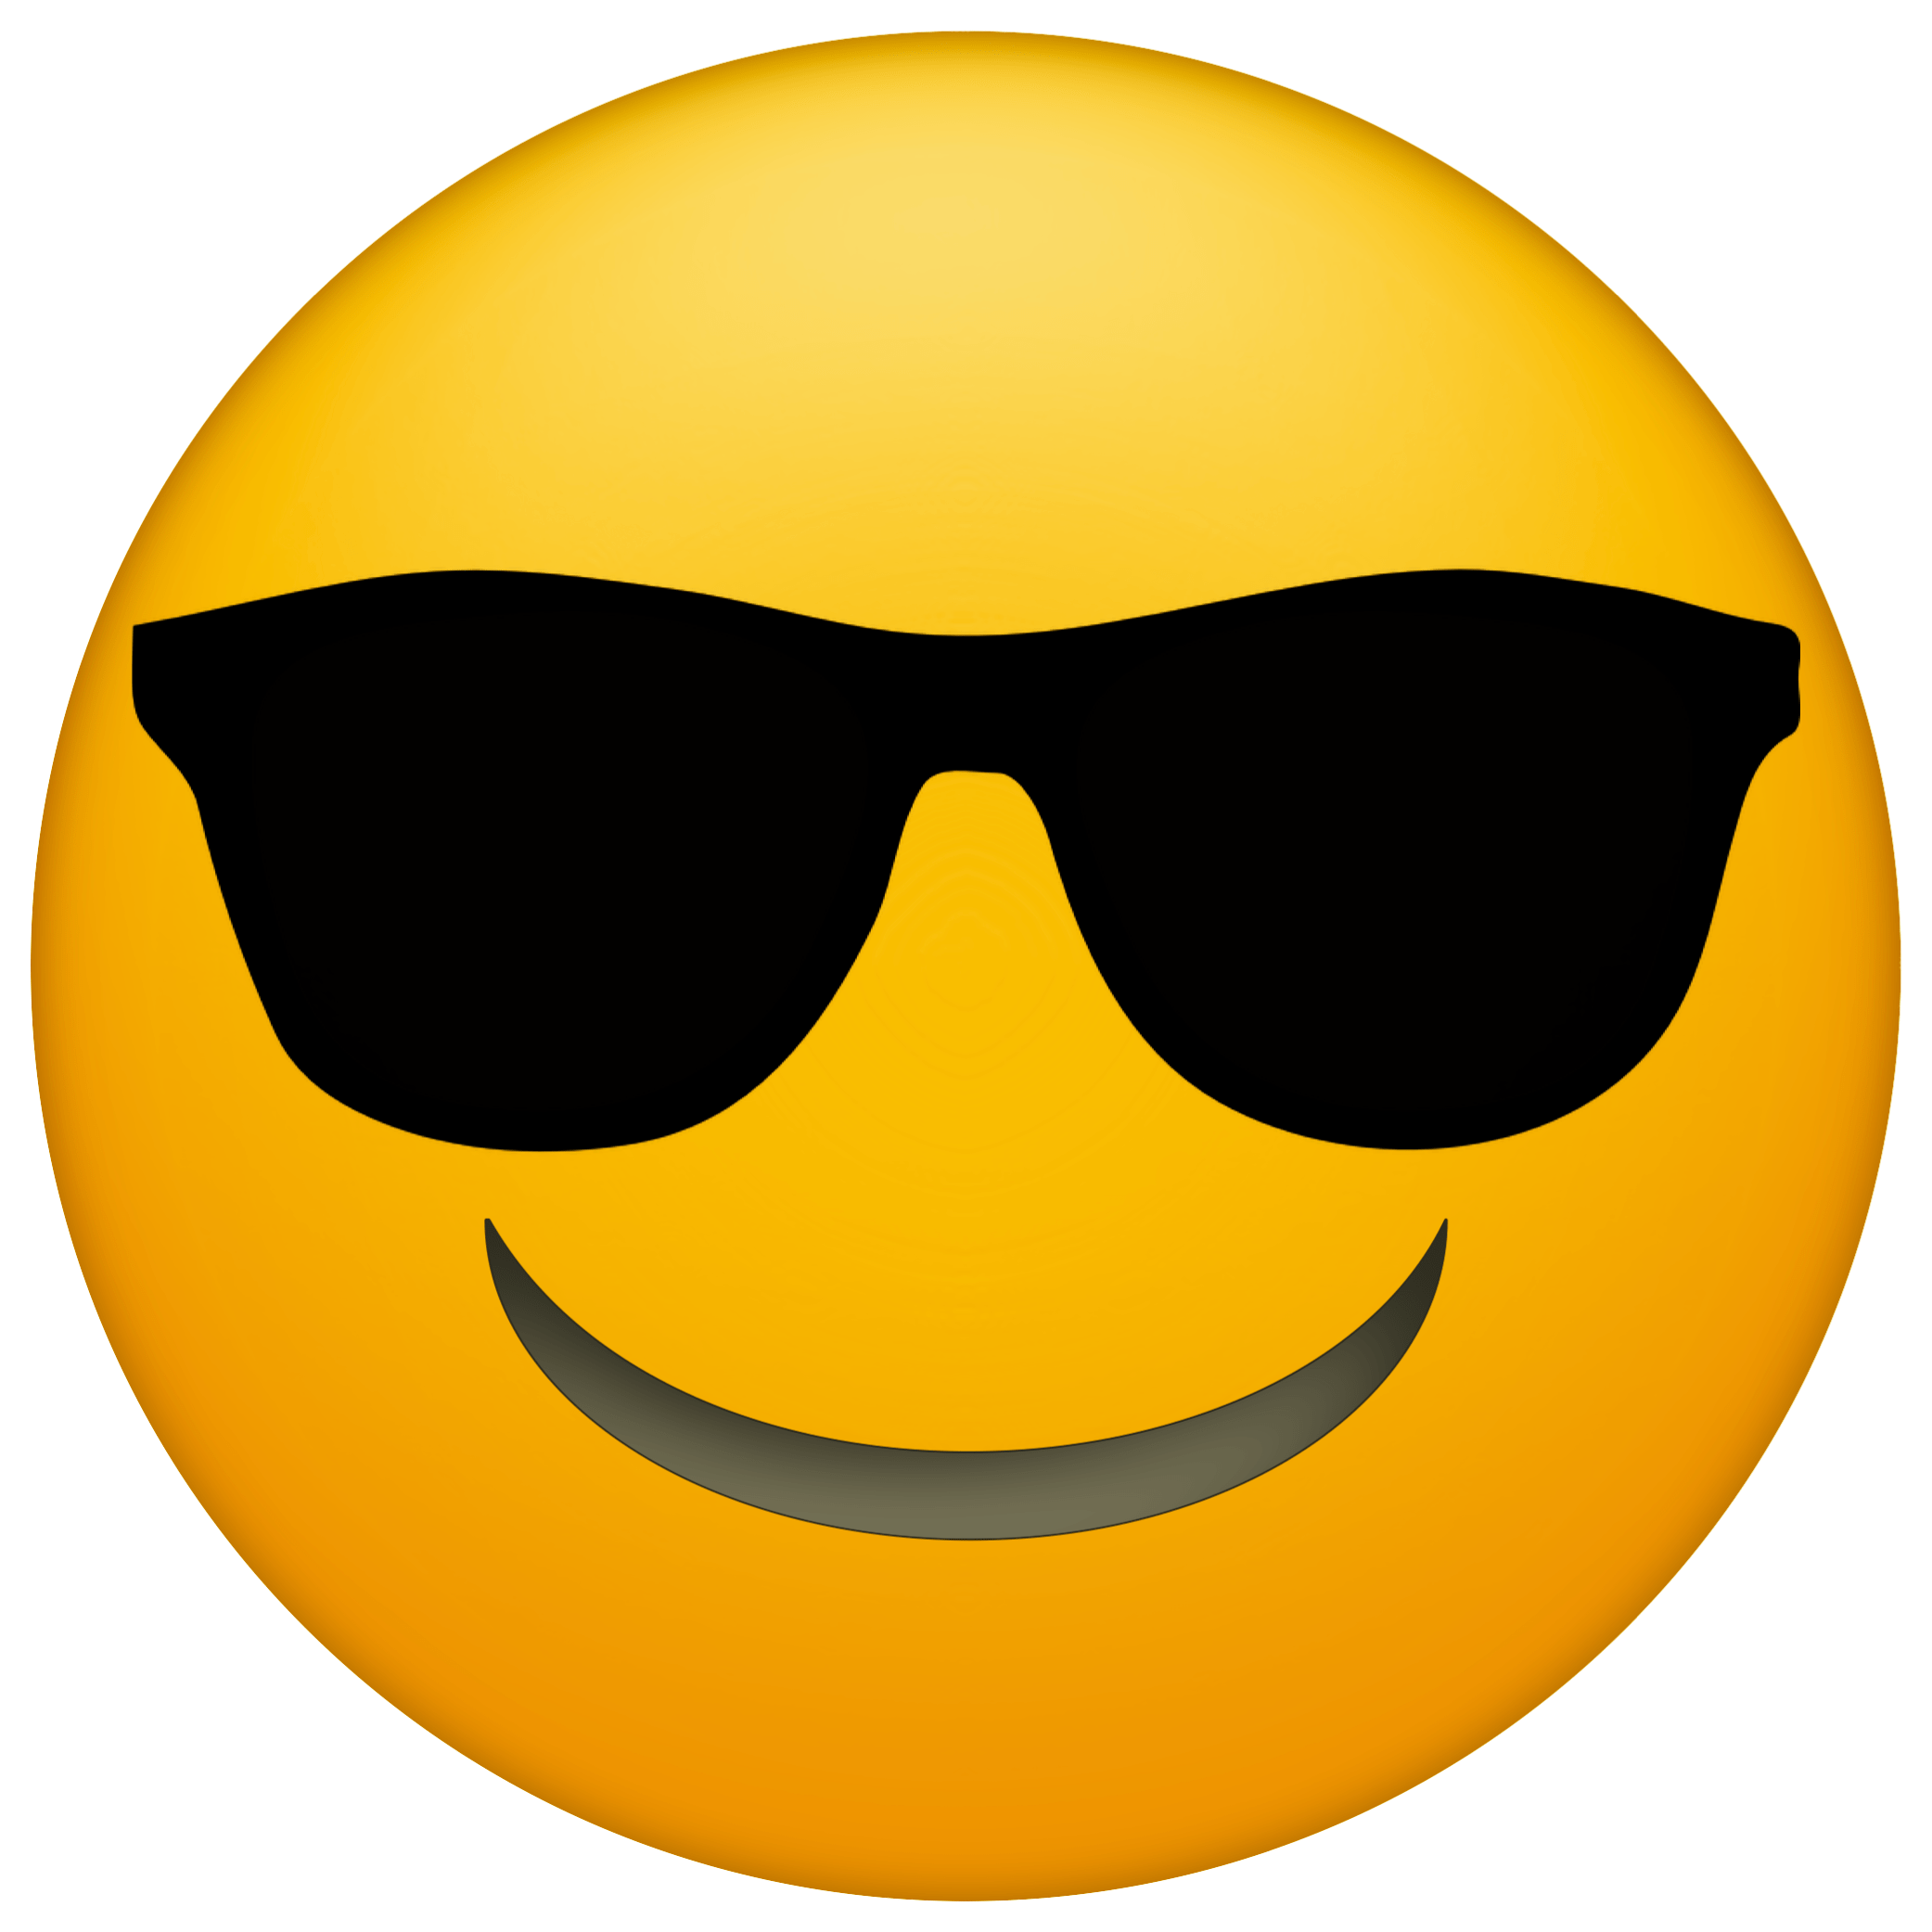 Lego face with sun glasses clipart graphic free download emoji-sunglasses.png (2083×2083) | veronic | Pinterest | Emoji and ... graphic free download